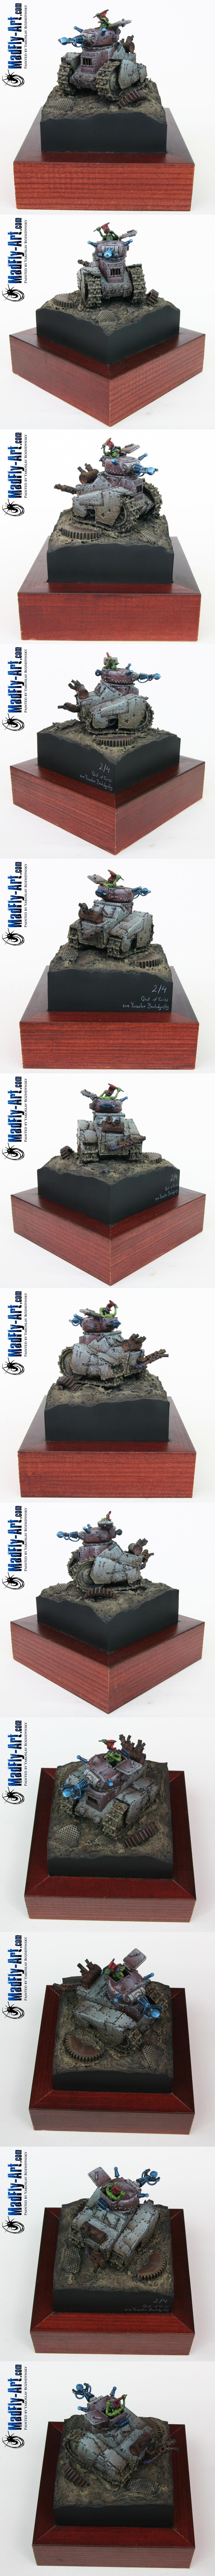 Grot of Tanks Collection 2/4